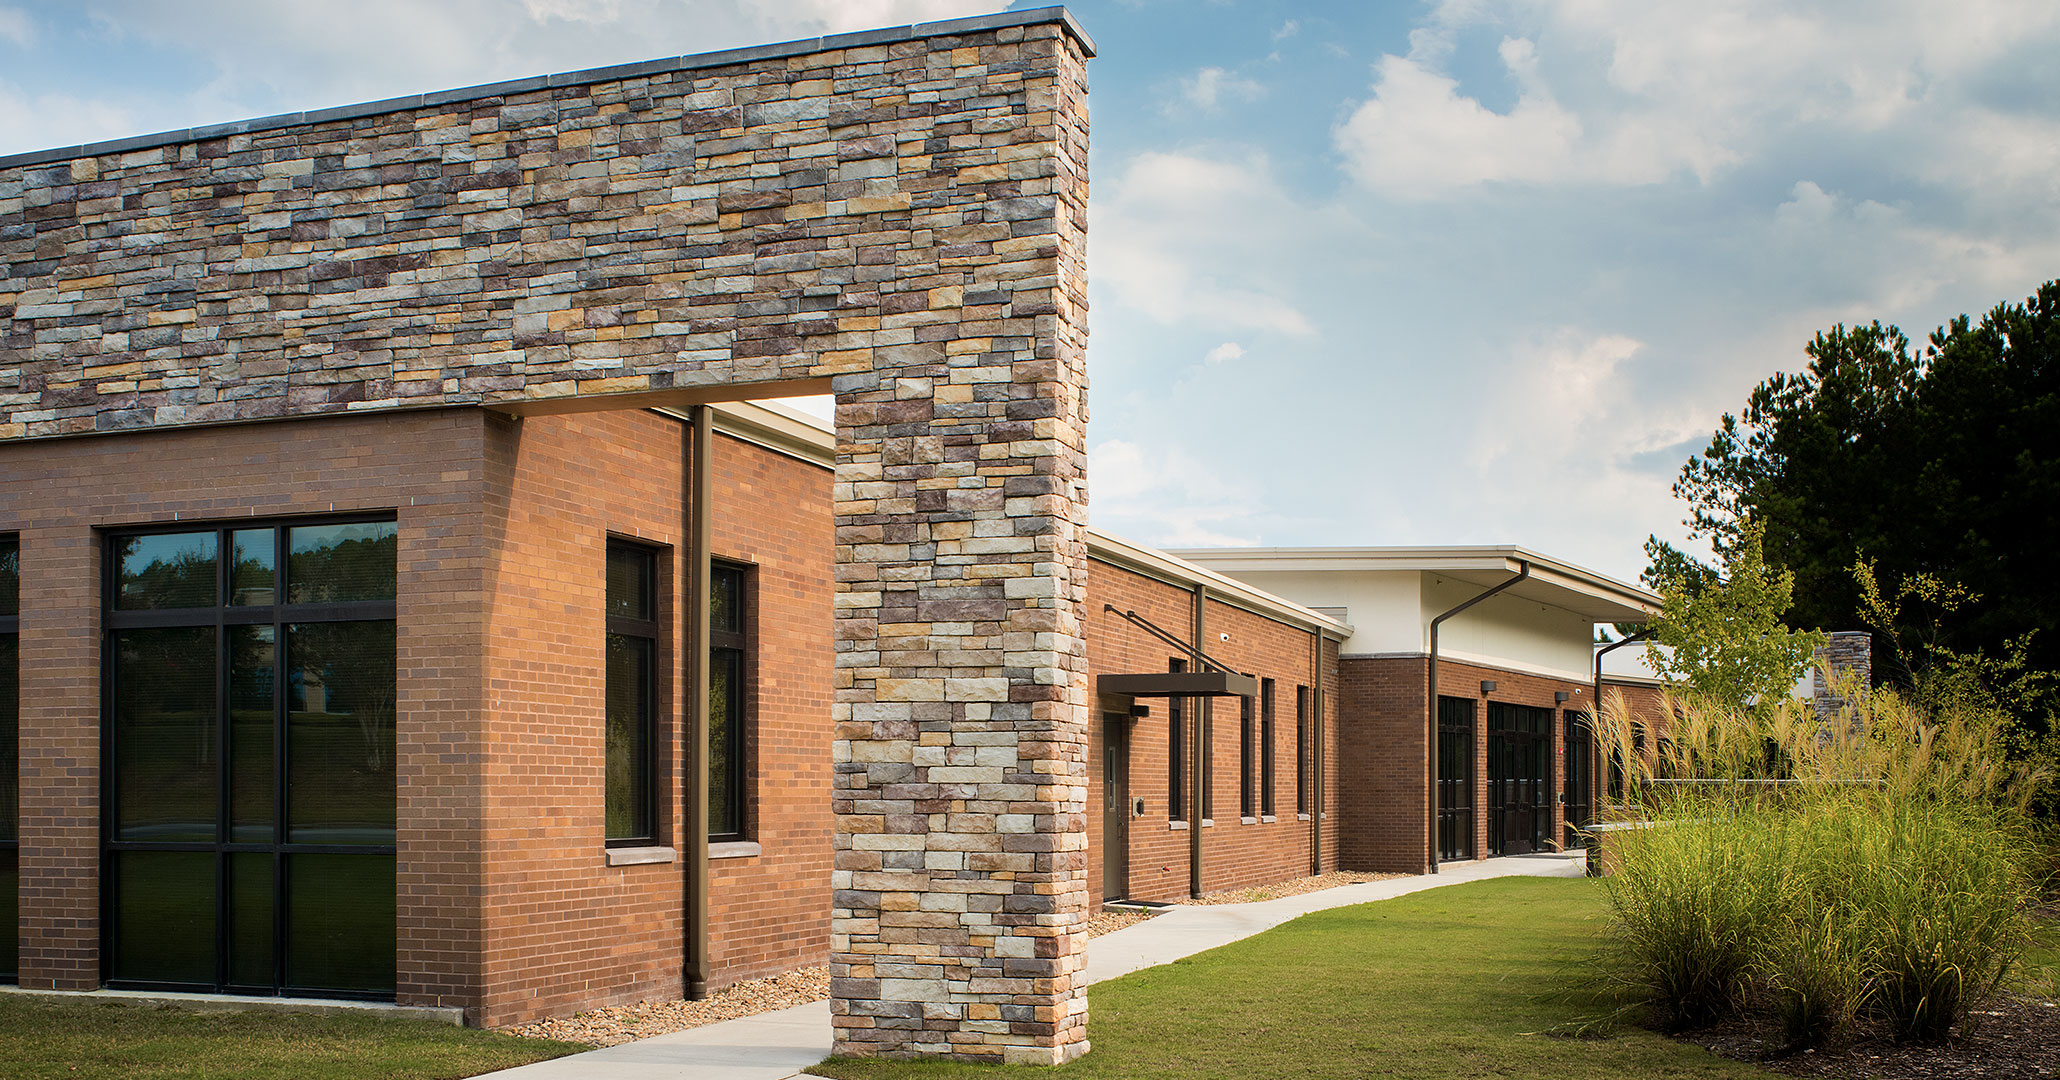 Boudreaux architects worked with the Richland County Recreation Commission to modernize the exterior of RCRC Headquarters.